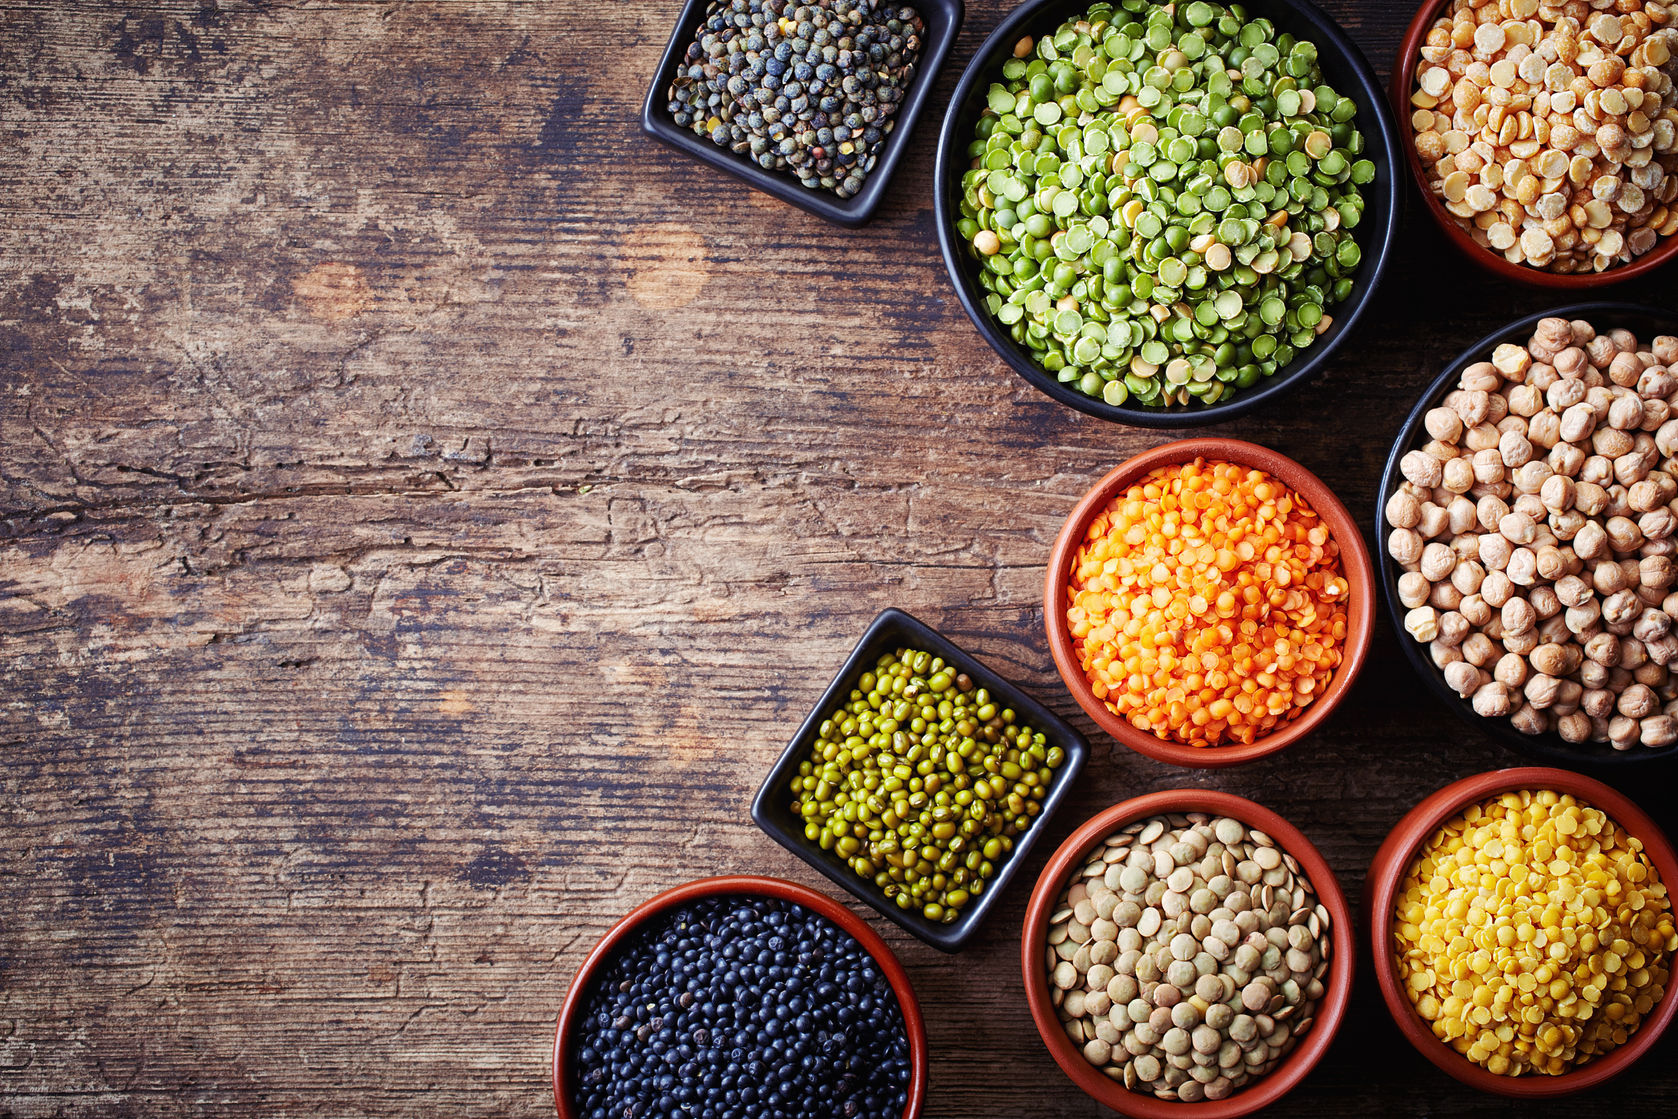 39441429 - bowls of various legumes (chickpeas, green peas, red lentils, canadian lentils, indian lentils, black lentils, green lentils; yellow peas, green mung beans) on wooden background